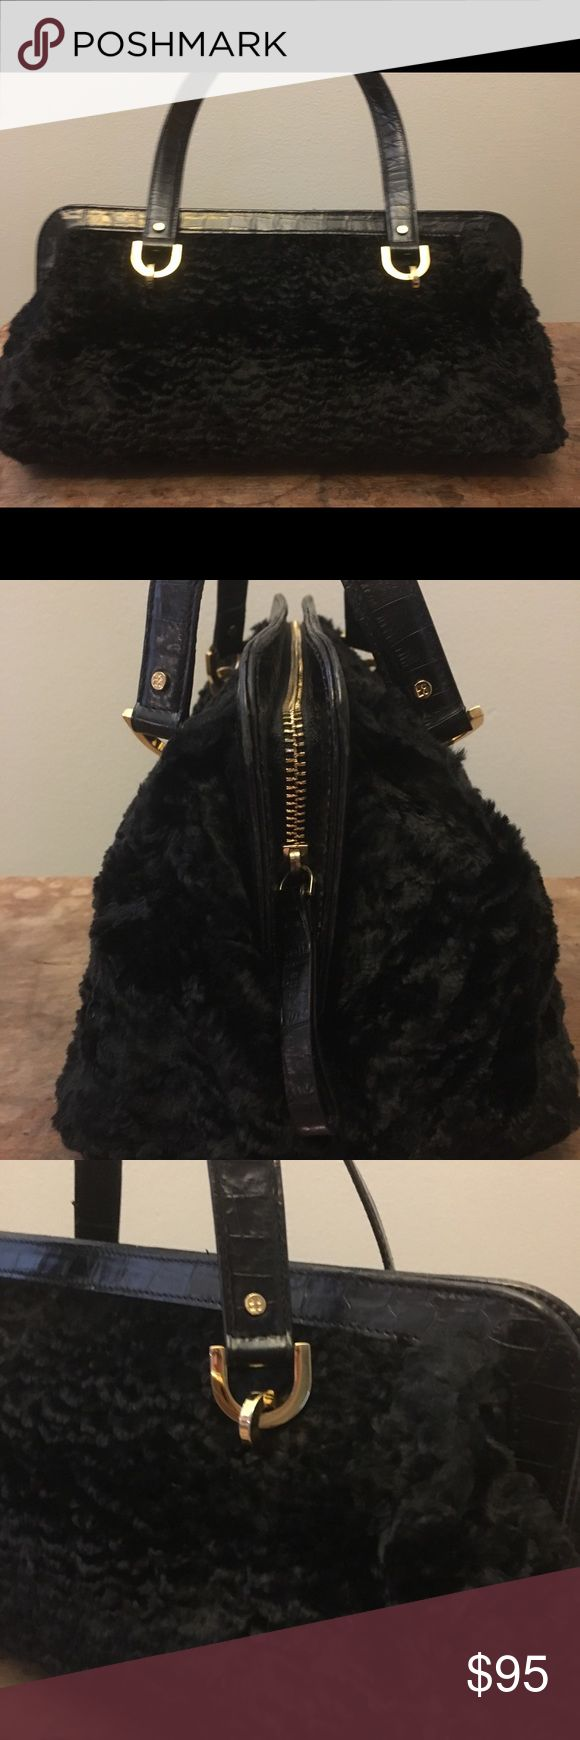 Kate Spade faux persian fur bag Kate Spade new york black faux fur (perisan lamb) bag. Elegant and gently used. Crocodile leather straps, bottom and edging (im not sure if this is genuine leather or not?) Gold zipper and bottom studs, bright green lining with a few pen marks that may wash out kate spade Bags